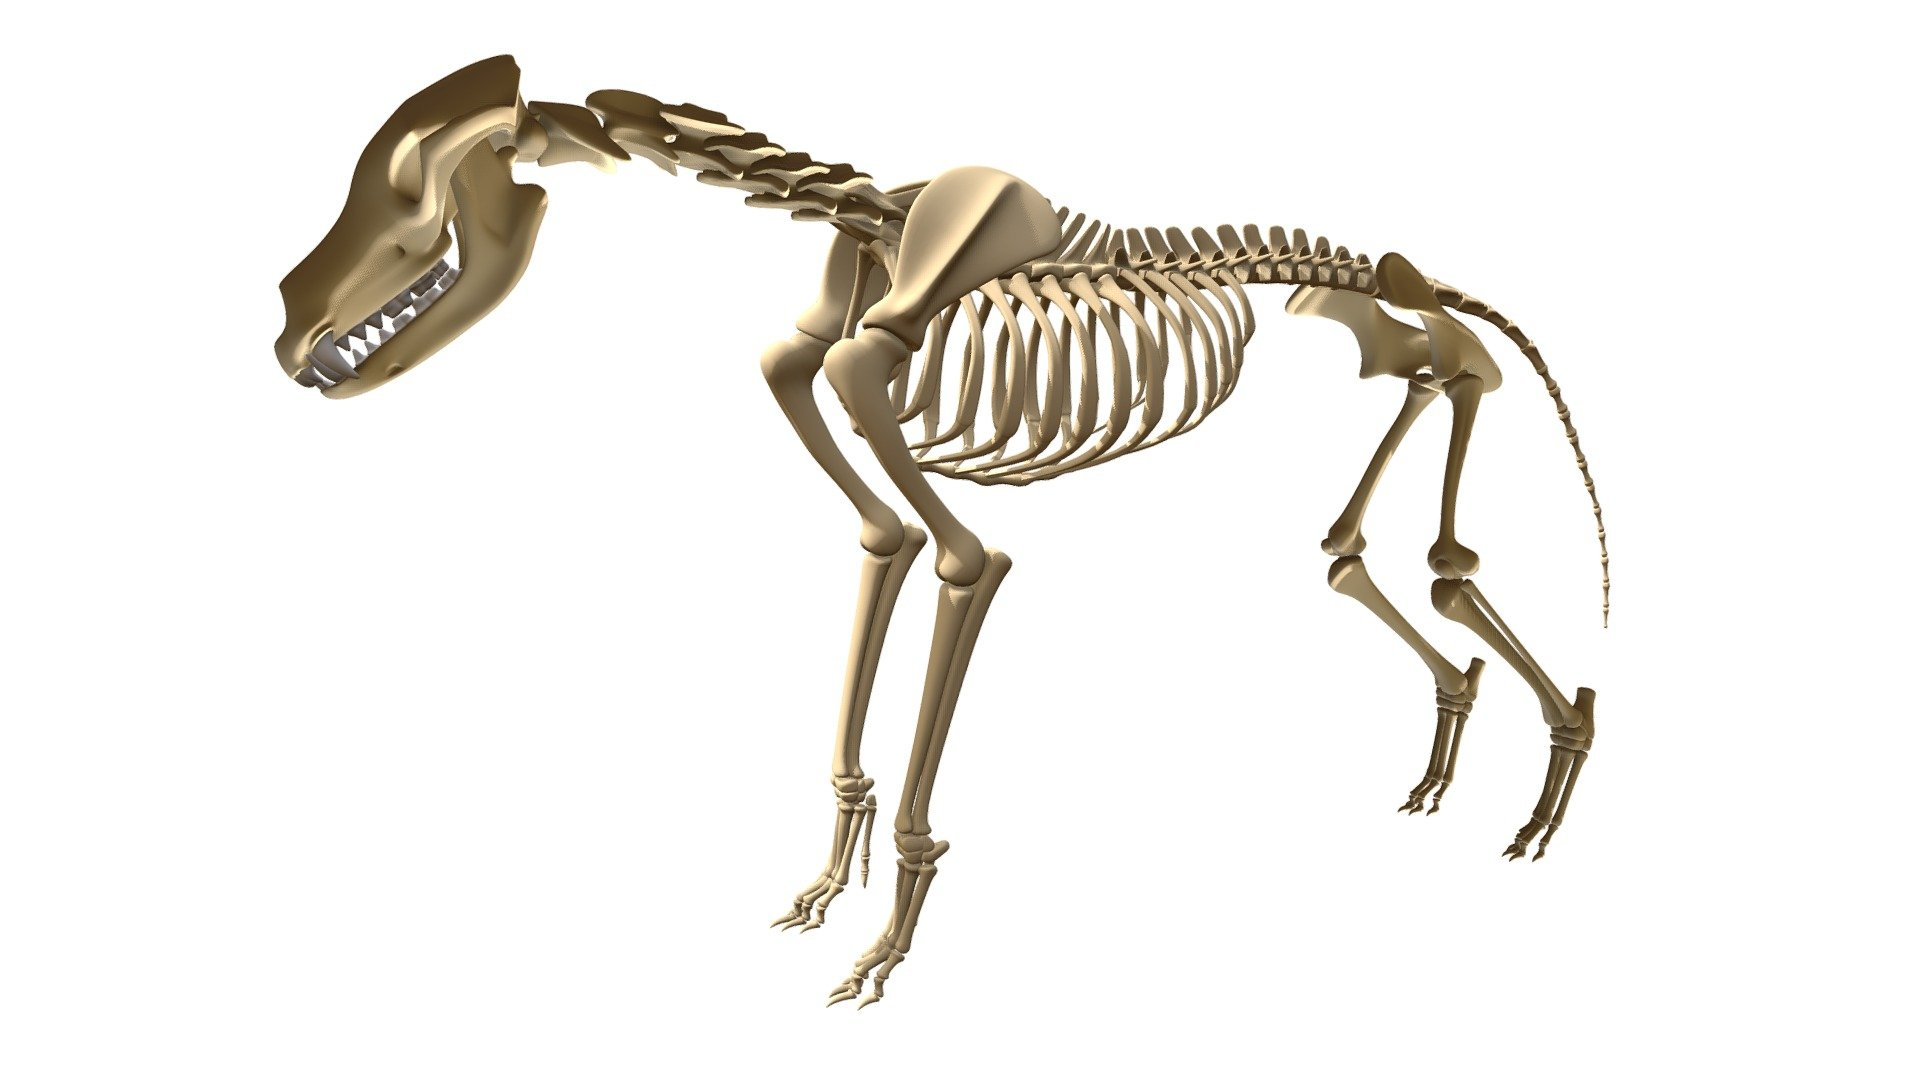 Wolf Skeleton Buy Royalty Free 3d Model By 3dhorse 3dhorse 0335080 Sketchfab Store